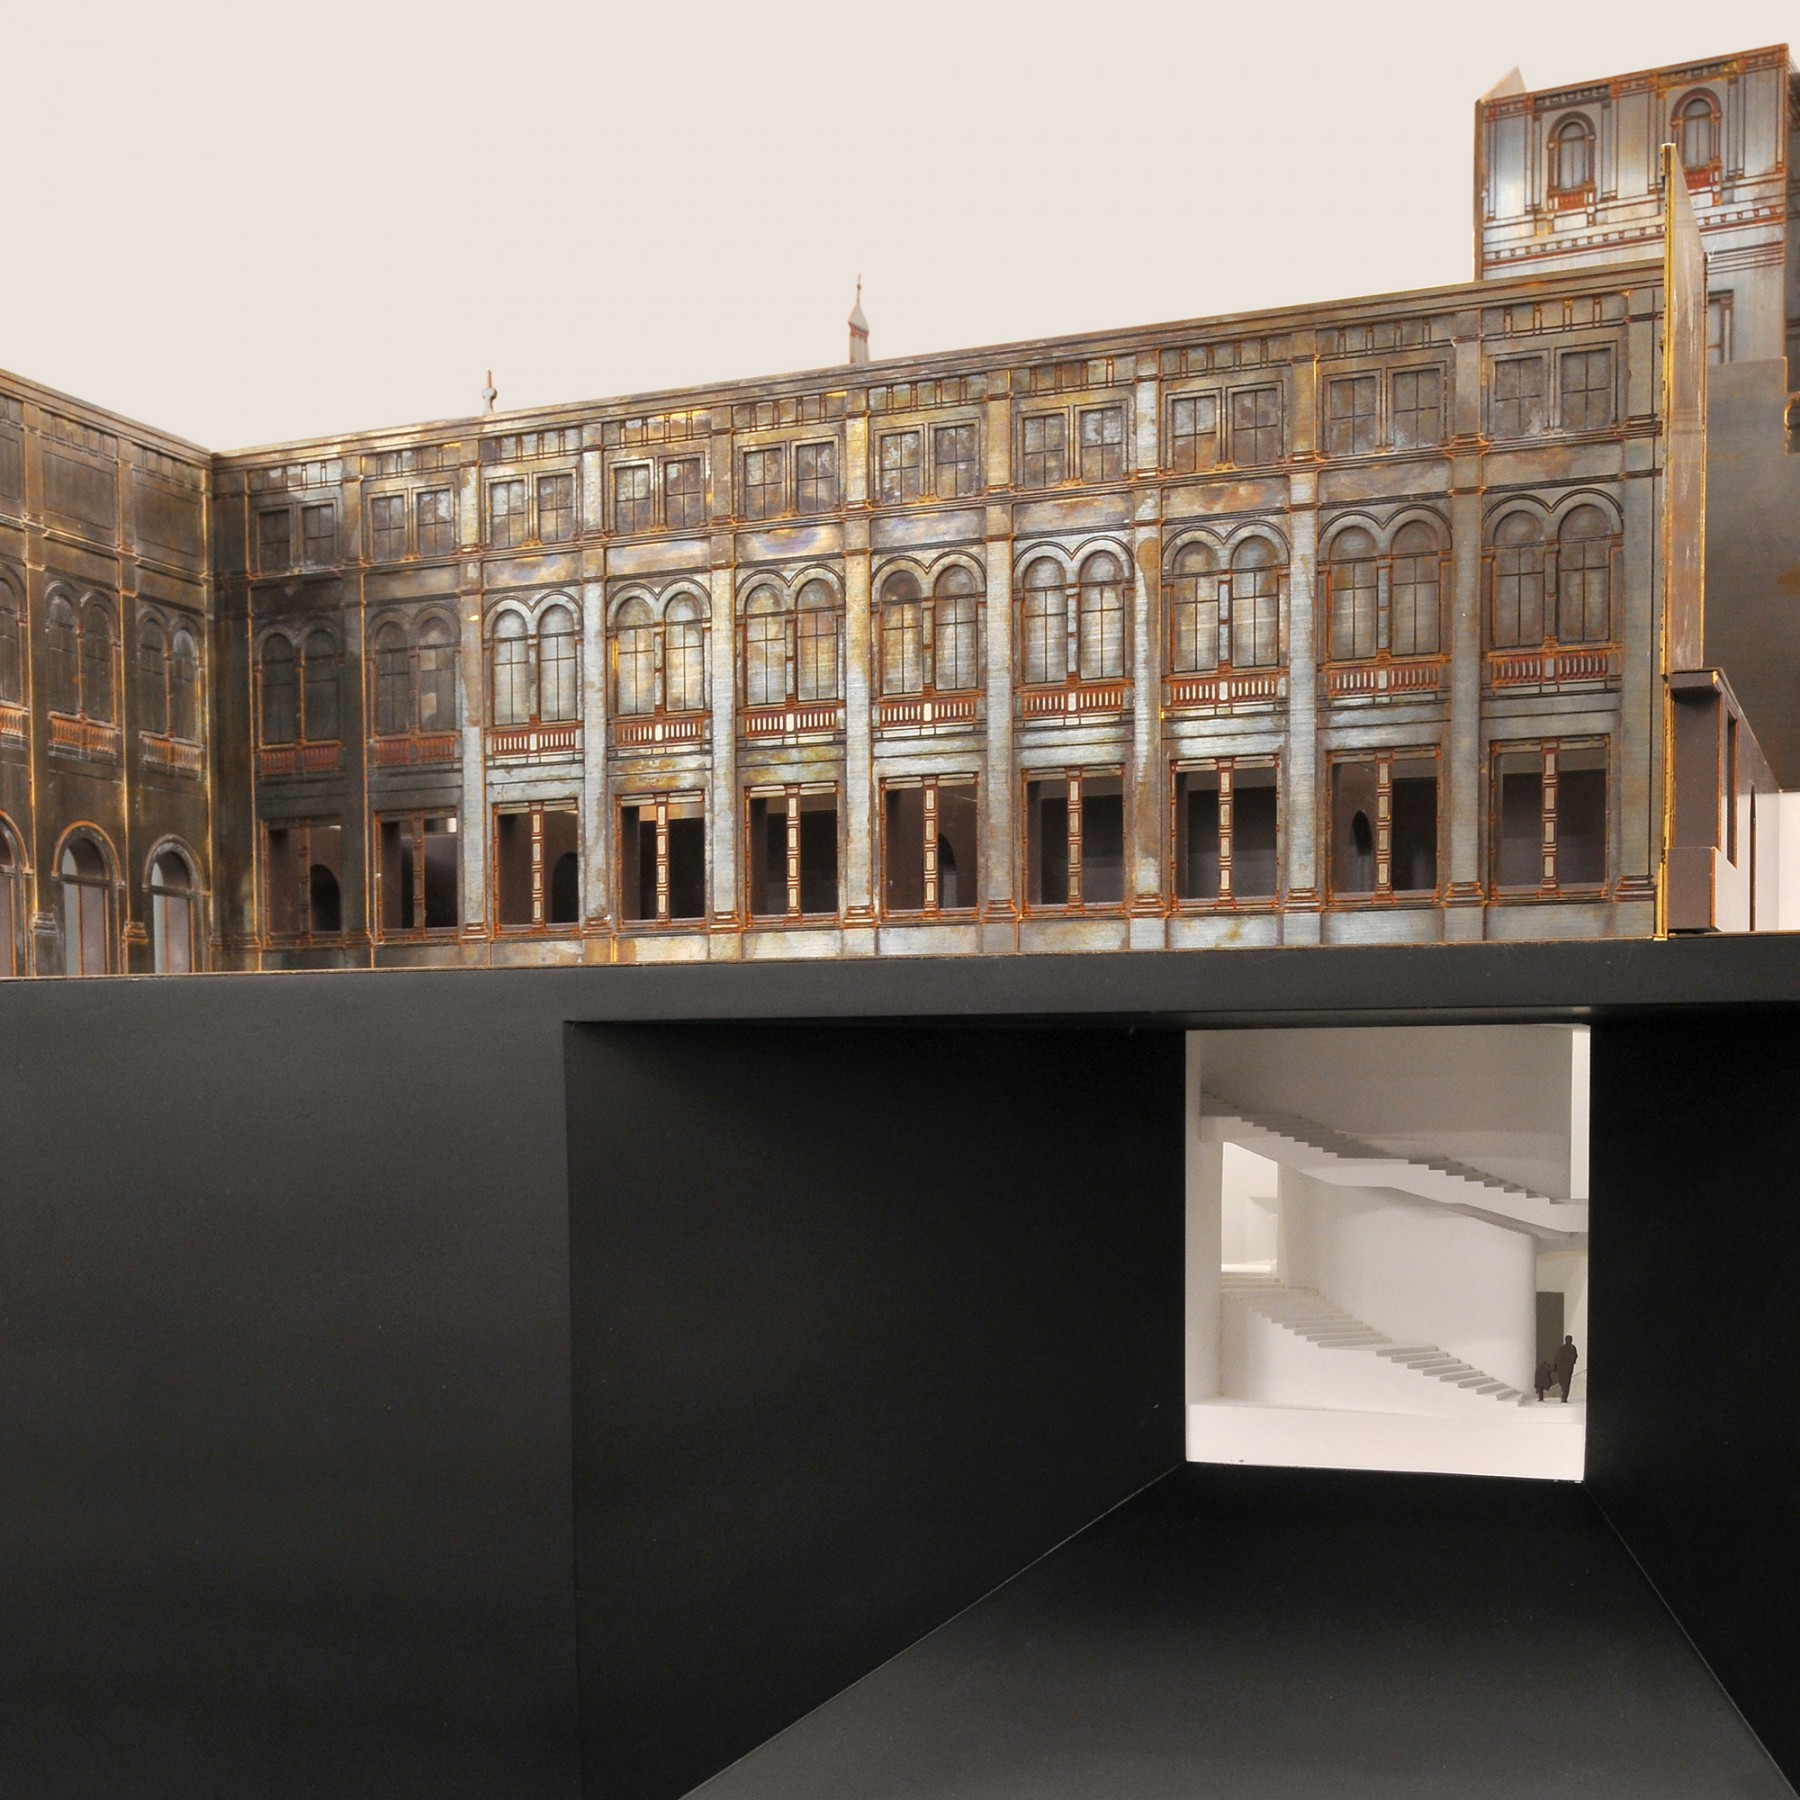 Victoria-and-Albert-Museum-V&A-competition-Exhibition-Road-gallery-London-Sir-Aston-Webb-design-short-list-Jamie-Fobert-architects-model-1